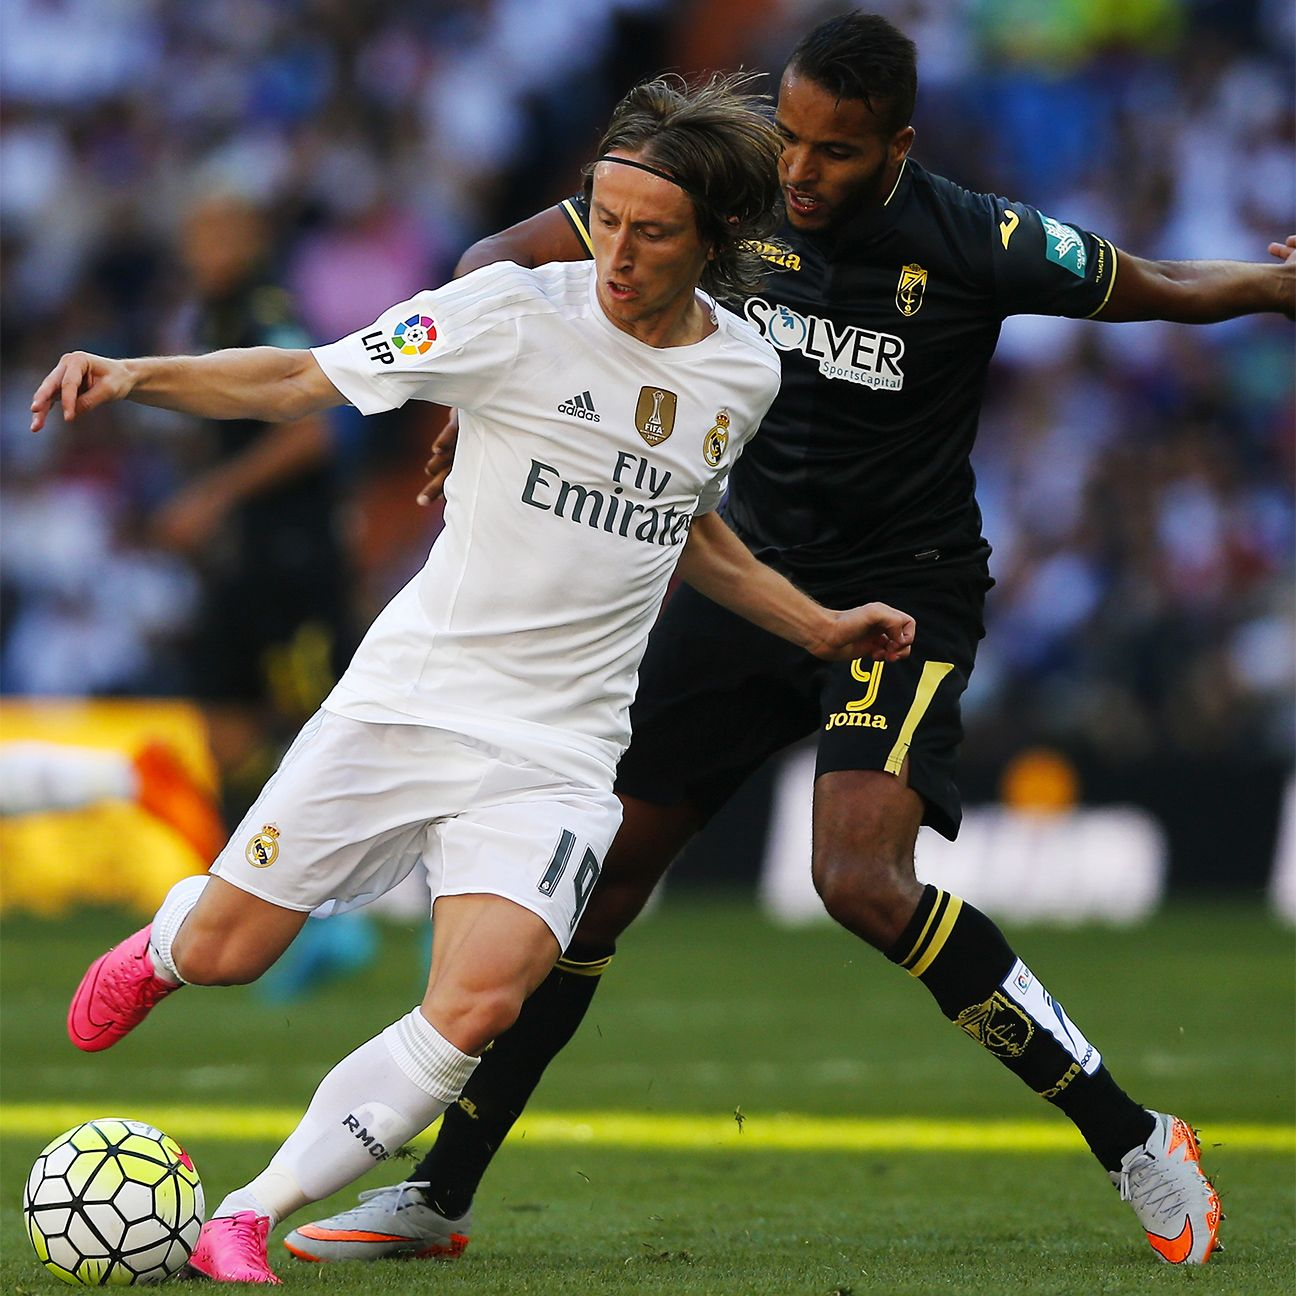 Luka Modric's play in midfield was a key component in Real's victory.